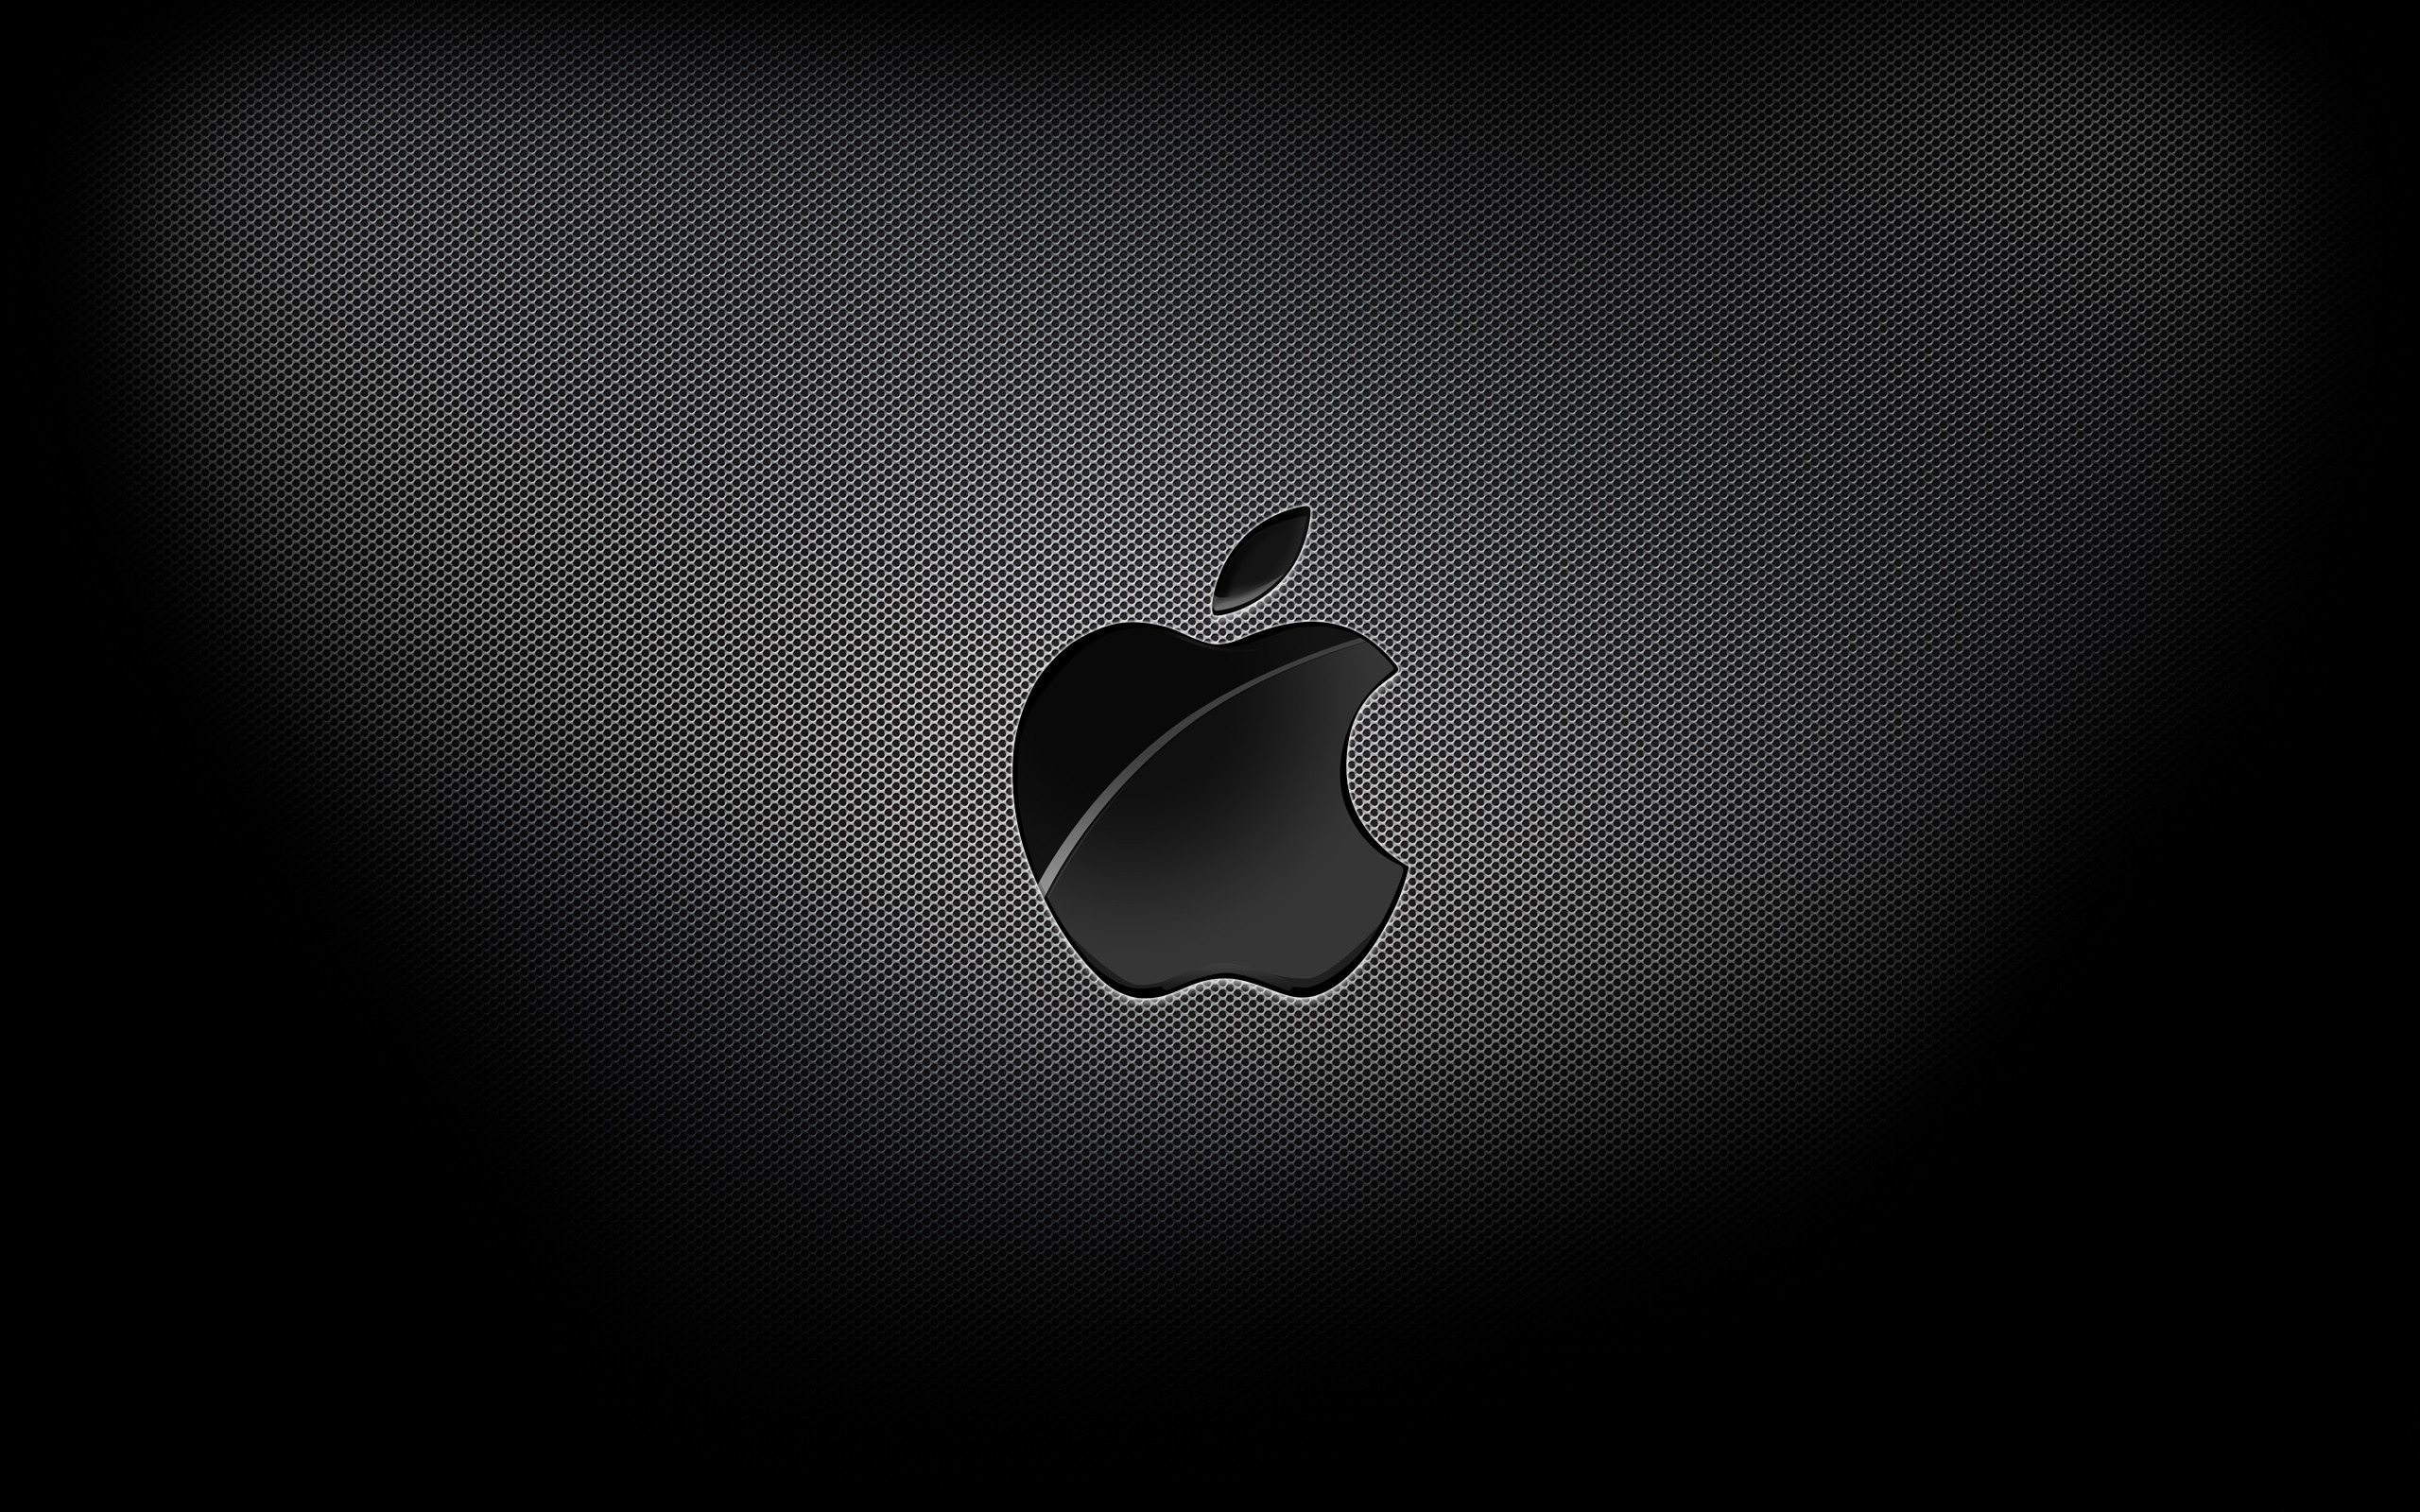 2560x1600px hd macbook pro retina wallpapers - wallpapersafari